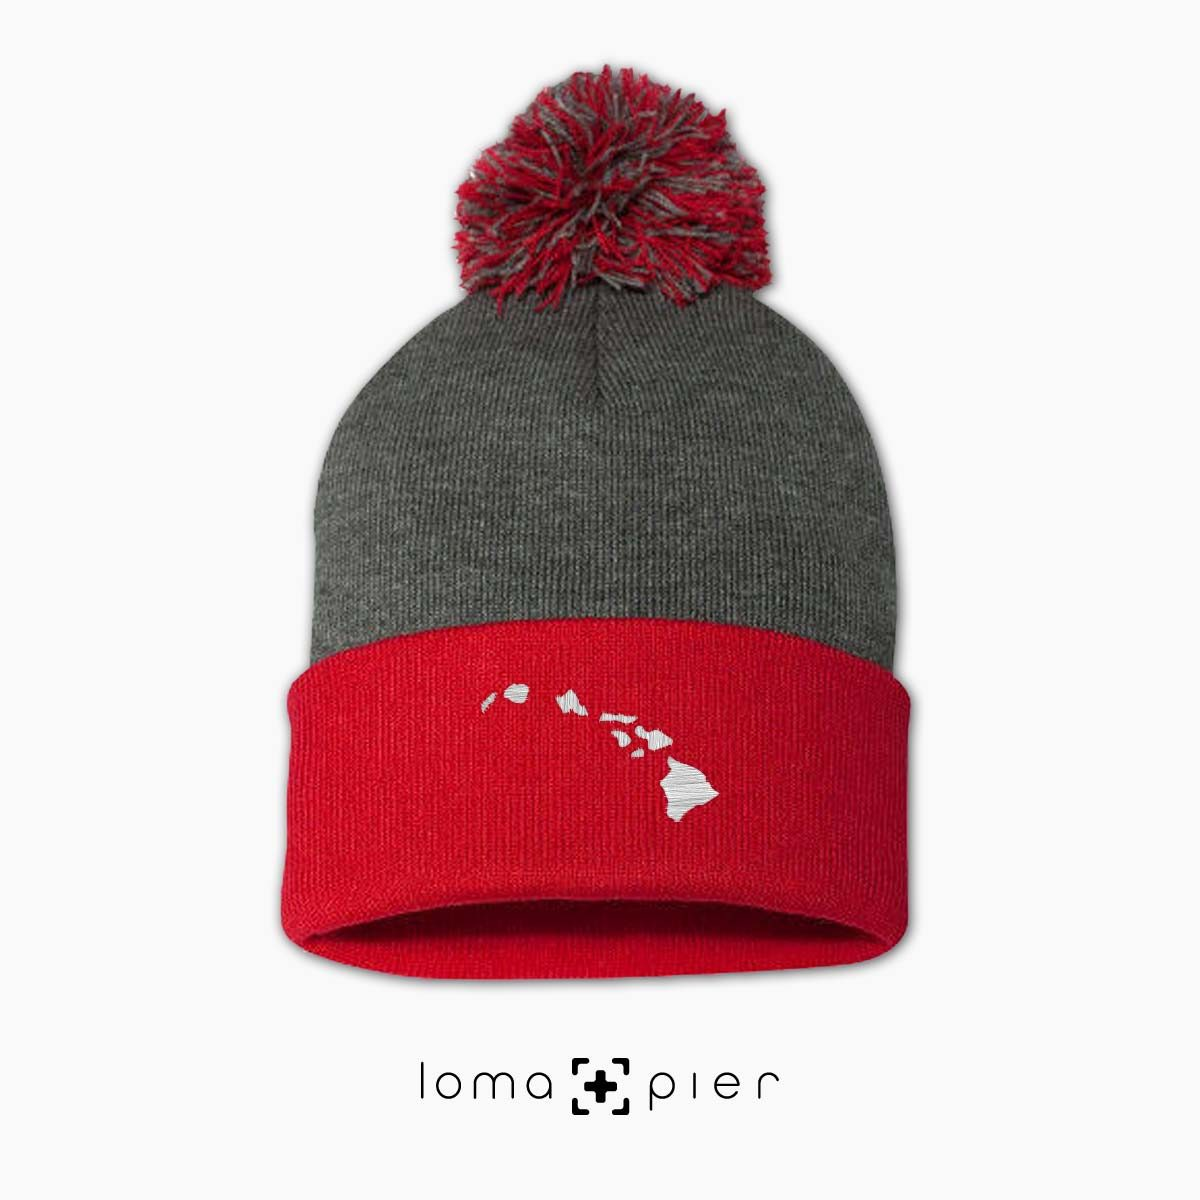 HAWAIIAN ISLANDS icon embroidered on a grey red pom pom hawaii beanie by loma+pier hat store